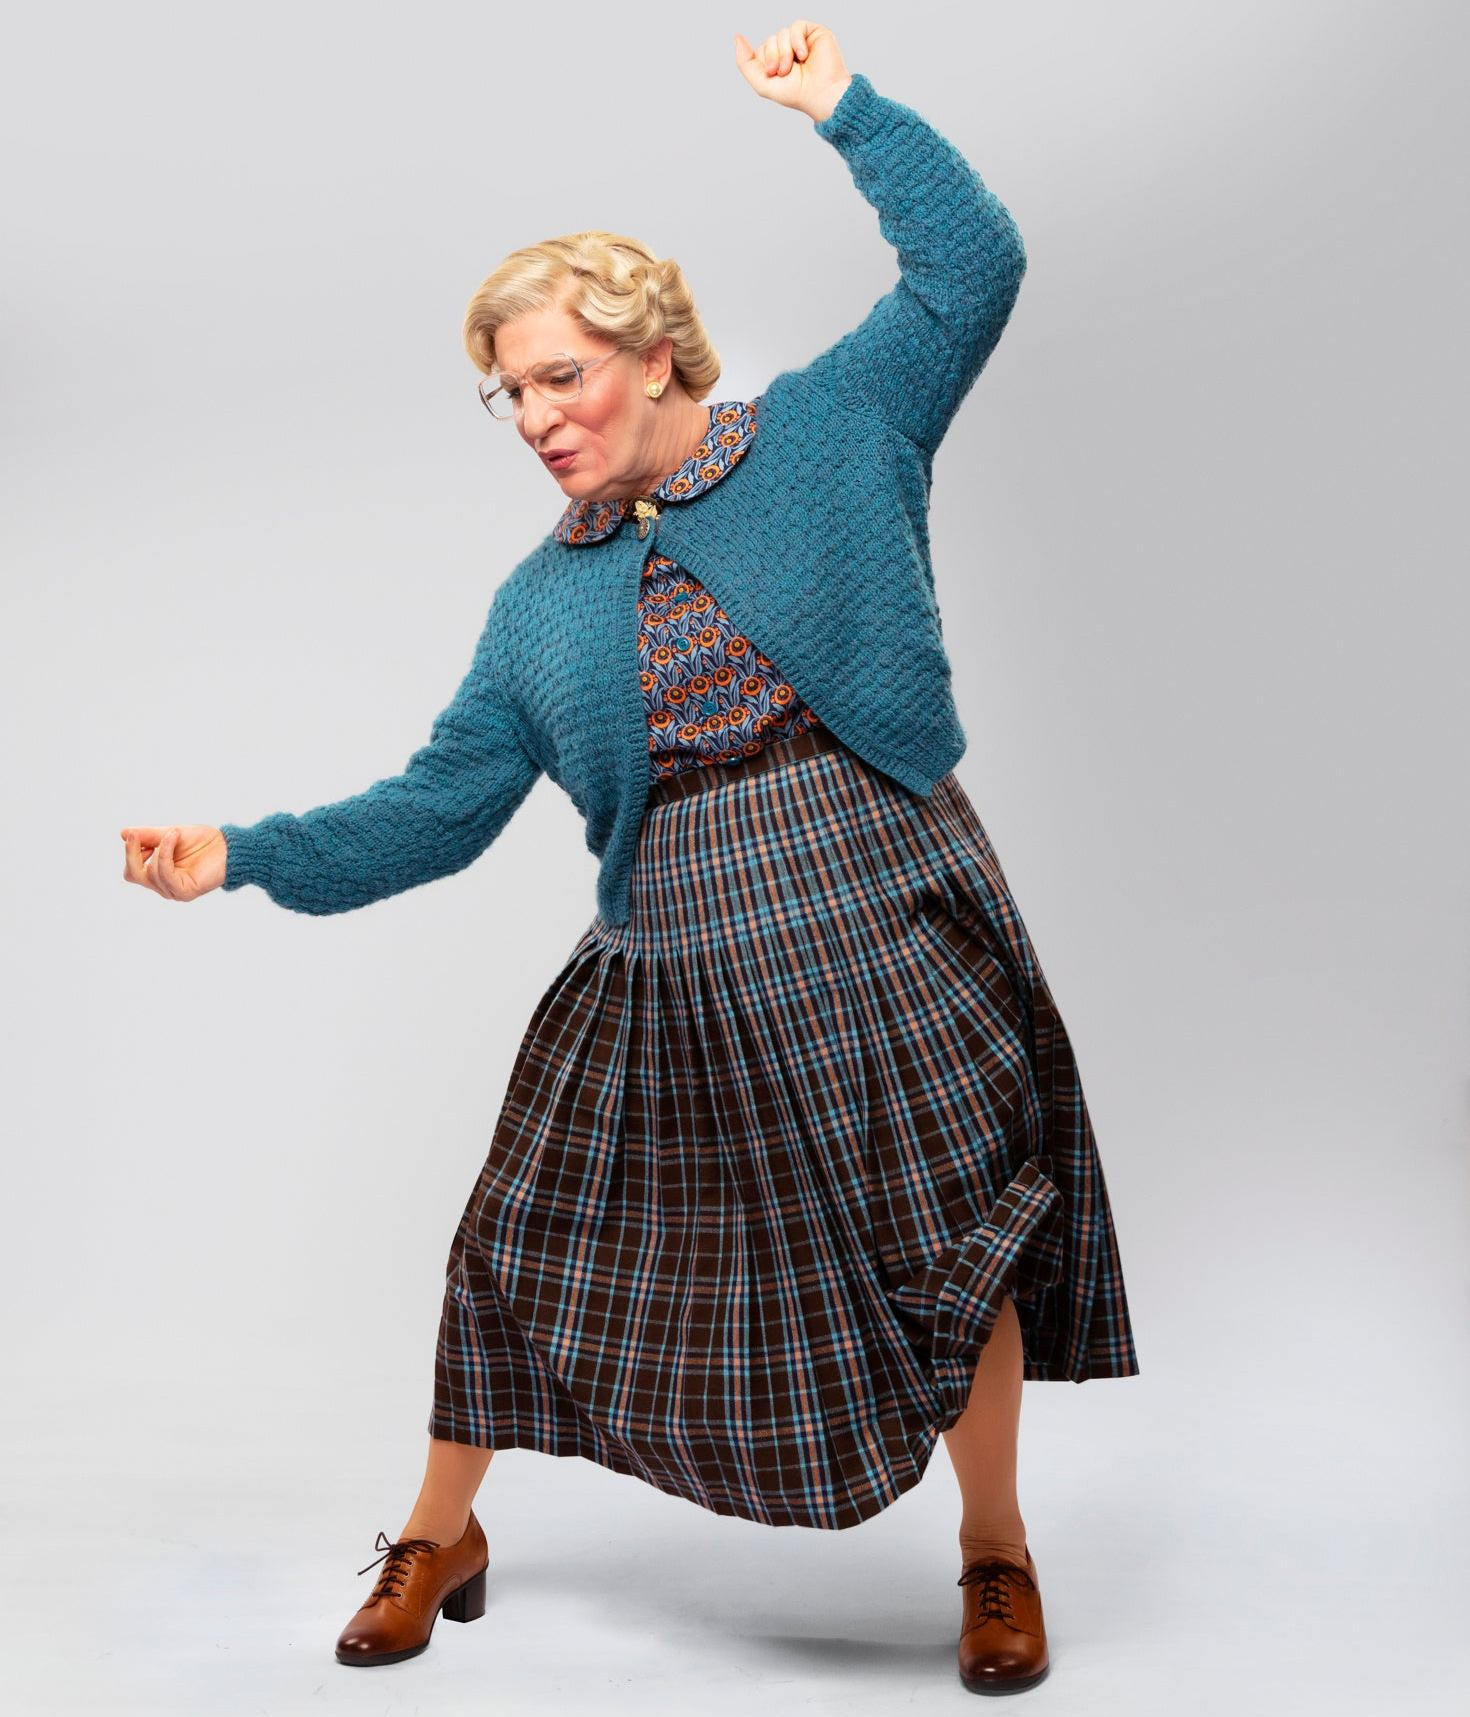 Broadway's Mrs. Doubtfire unveils first-look photos of Rob McClure as the titular nanny 13